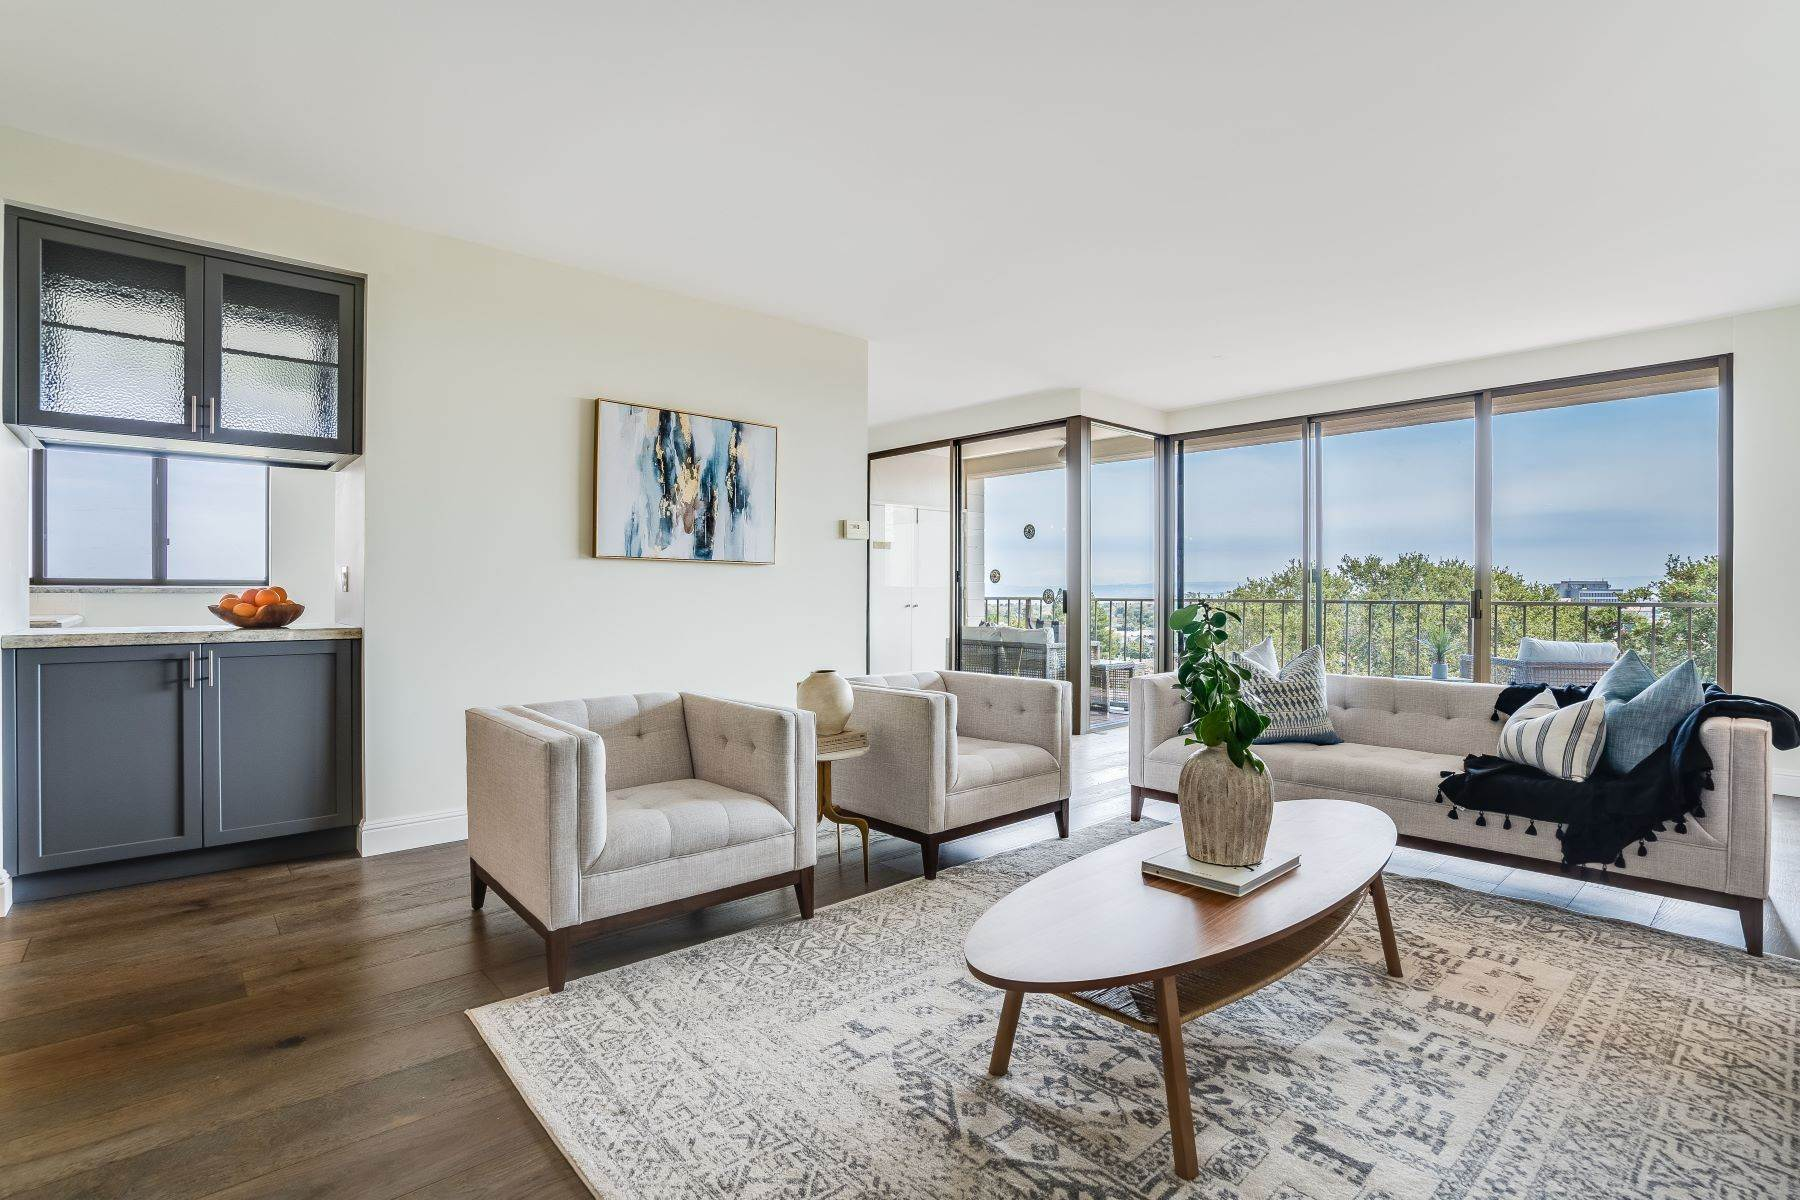 2. Condominiums for Sale at Luxury Condo in San Mateo Park! 50 Mounds Road #206 San Mateo, California 94402 United States